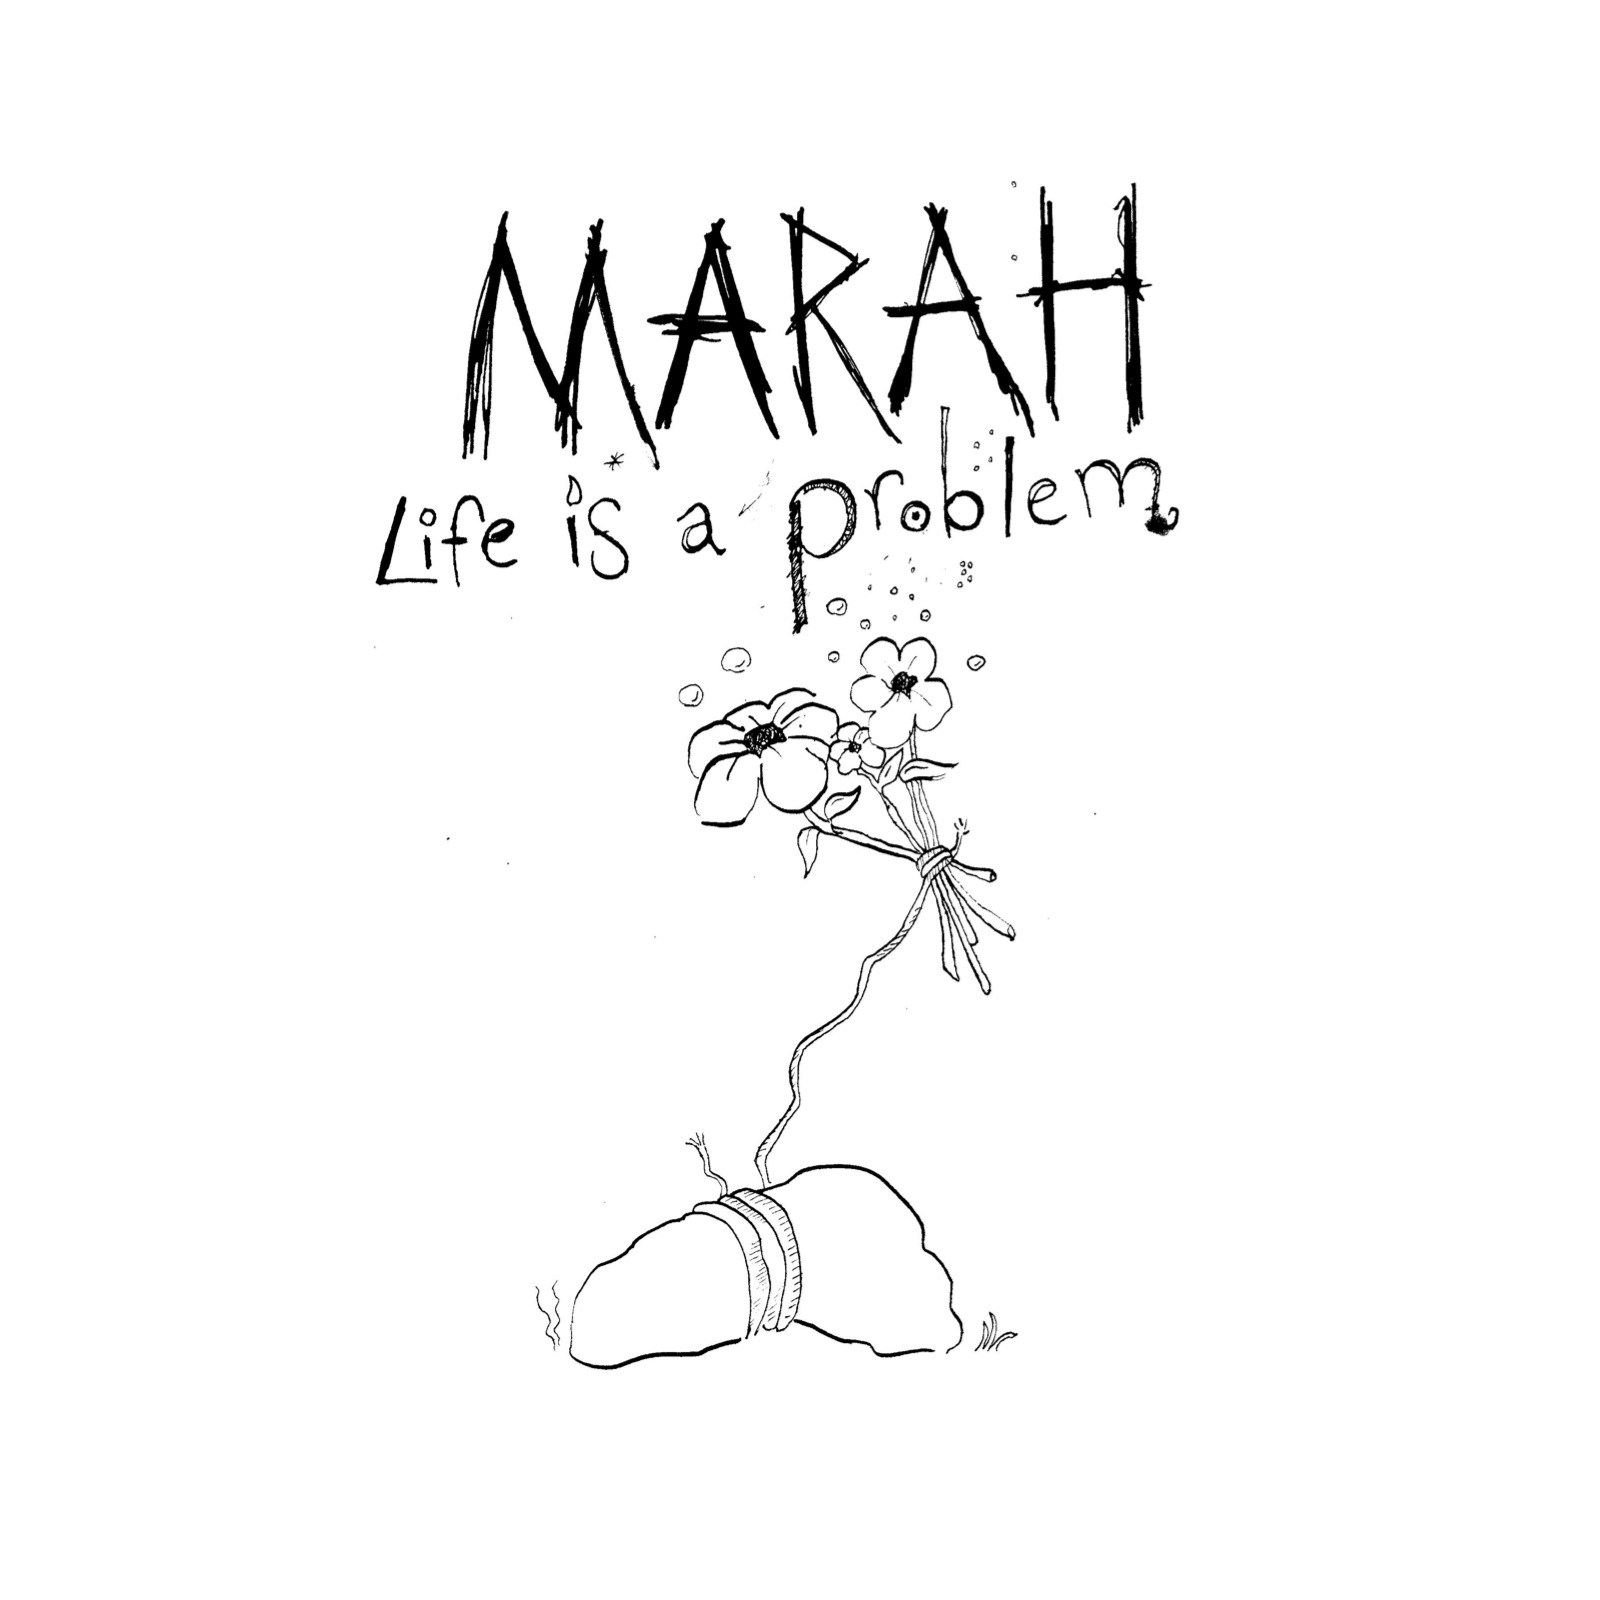 life_is_a_problem_cover_20100420_112953.jpg